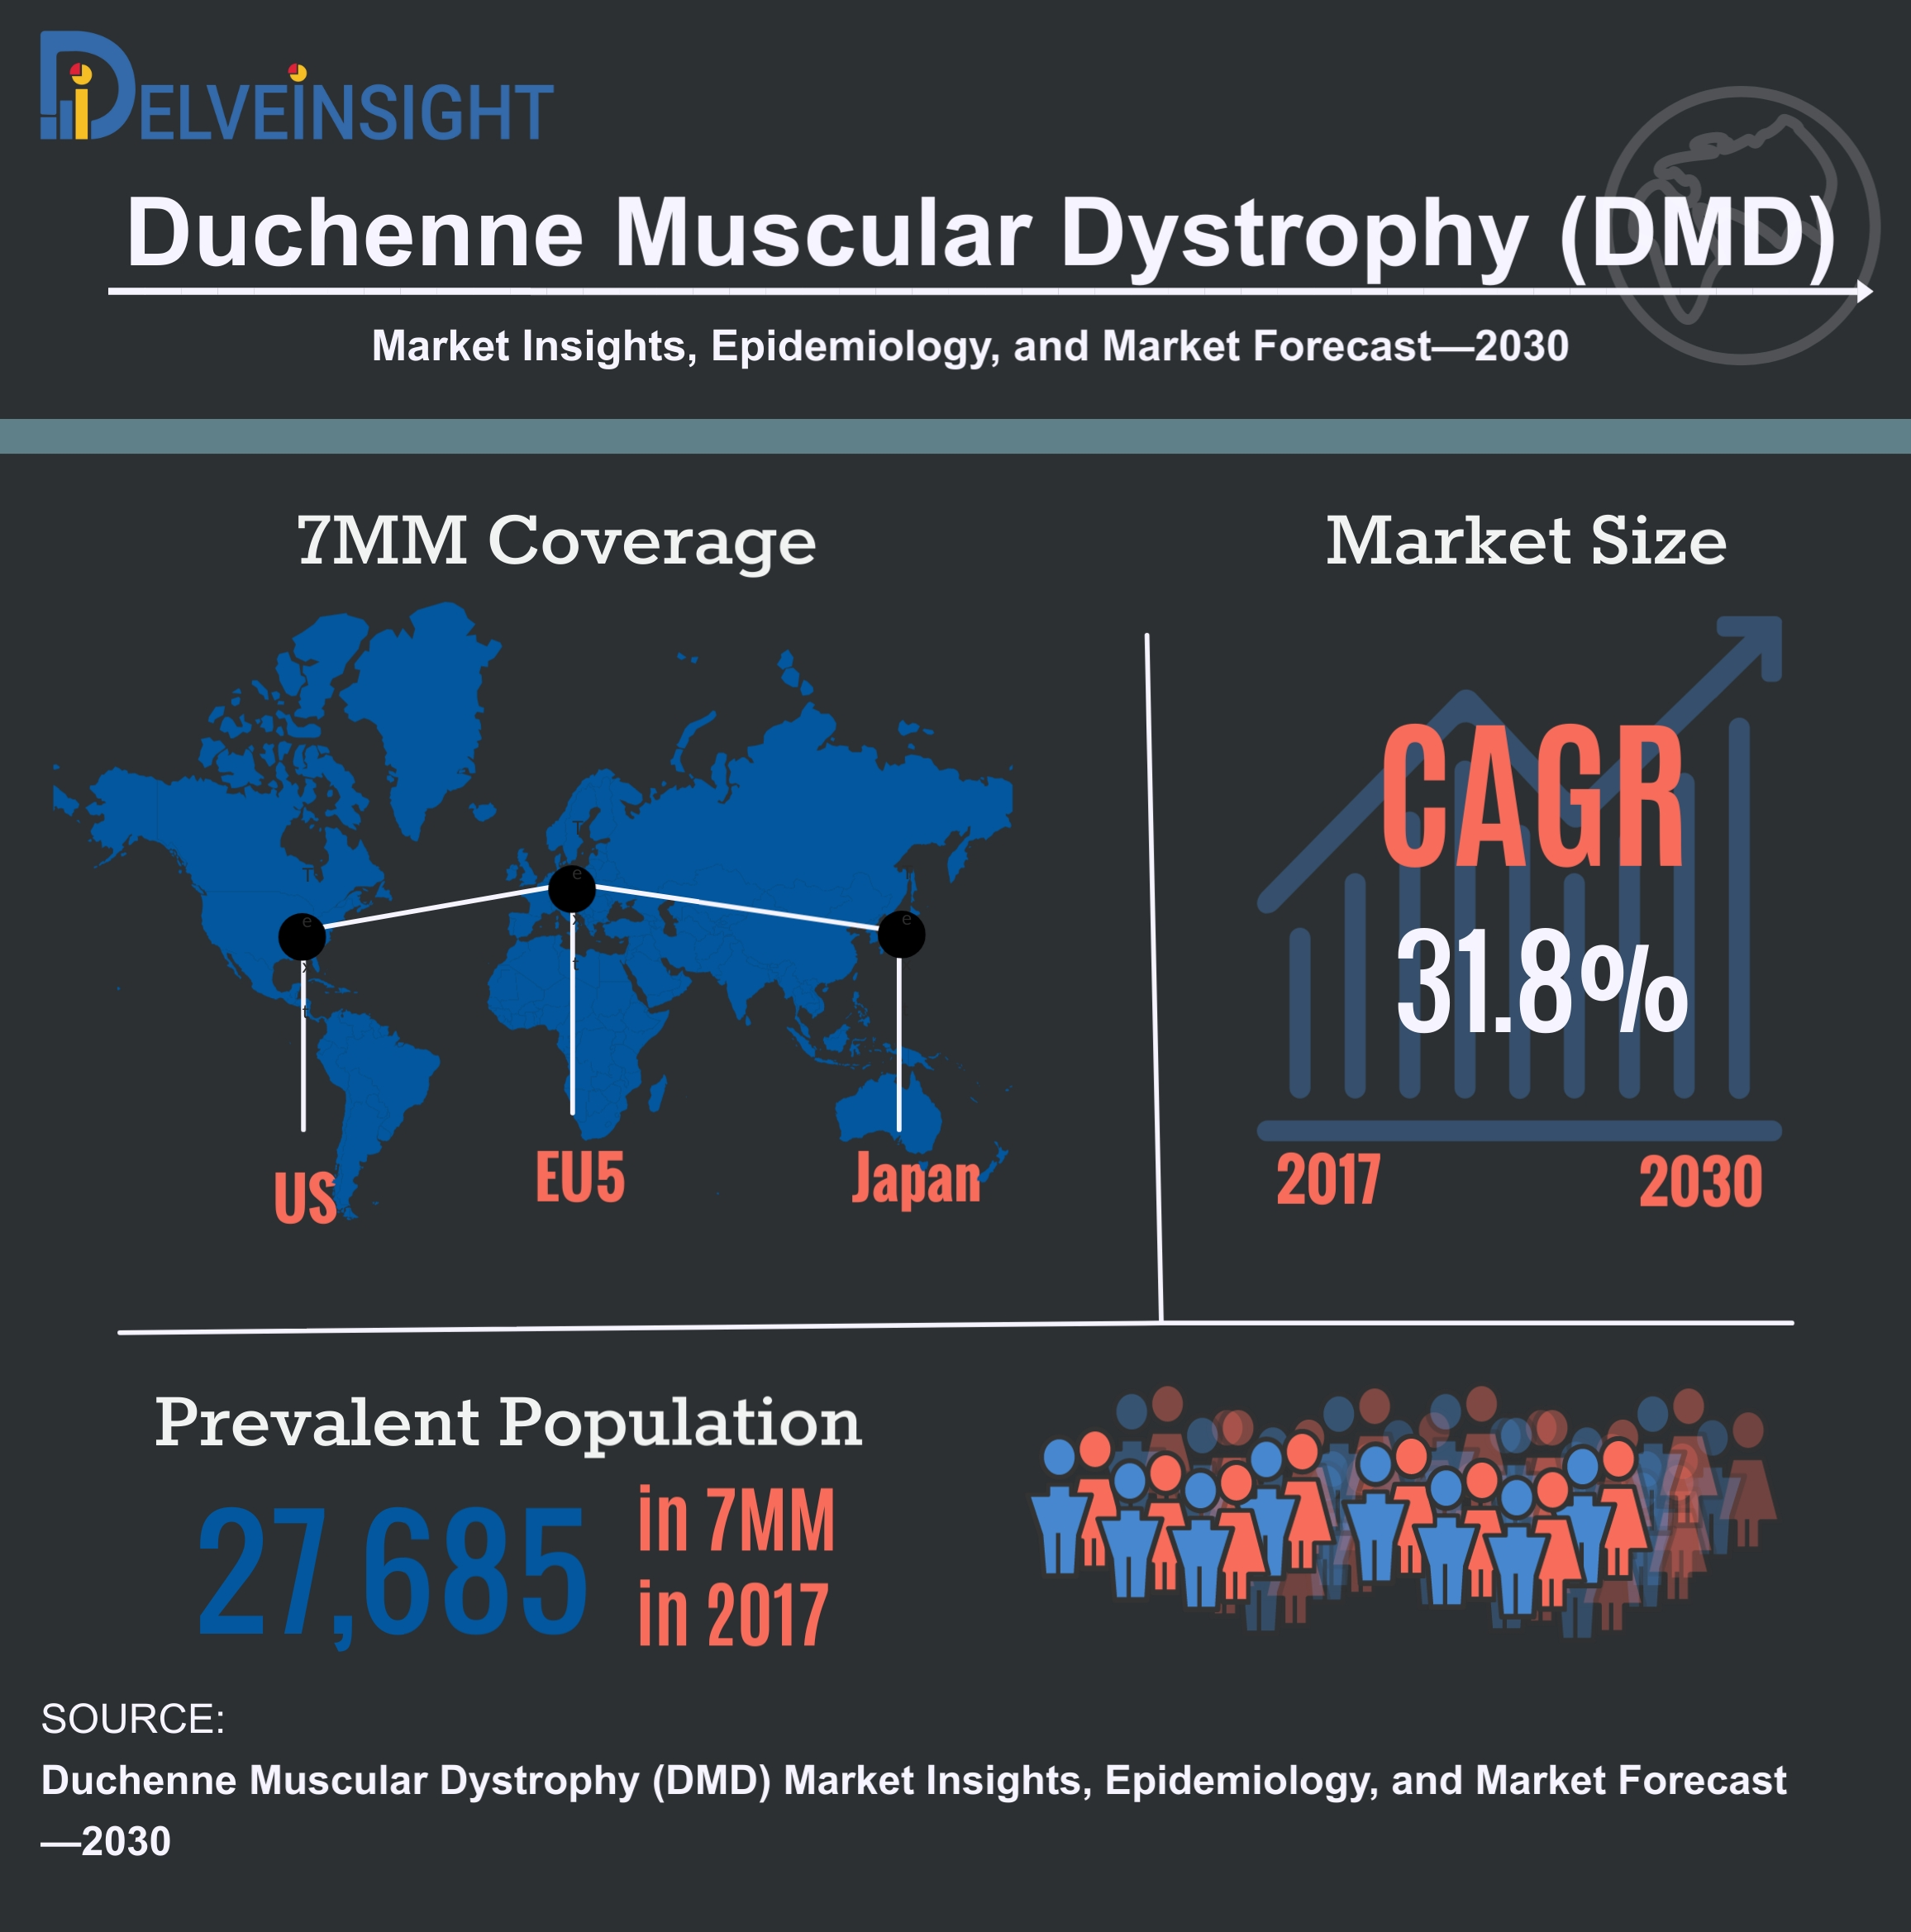 Duchenne Muscular Dystrophy Epidemiology: Analysis, and Forecast - 3-year historical and 11-year Forecast Analysis